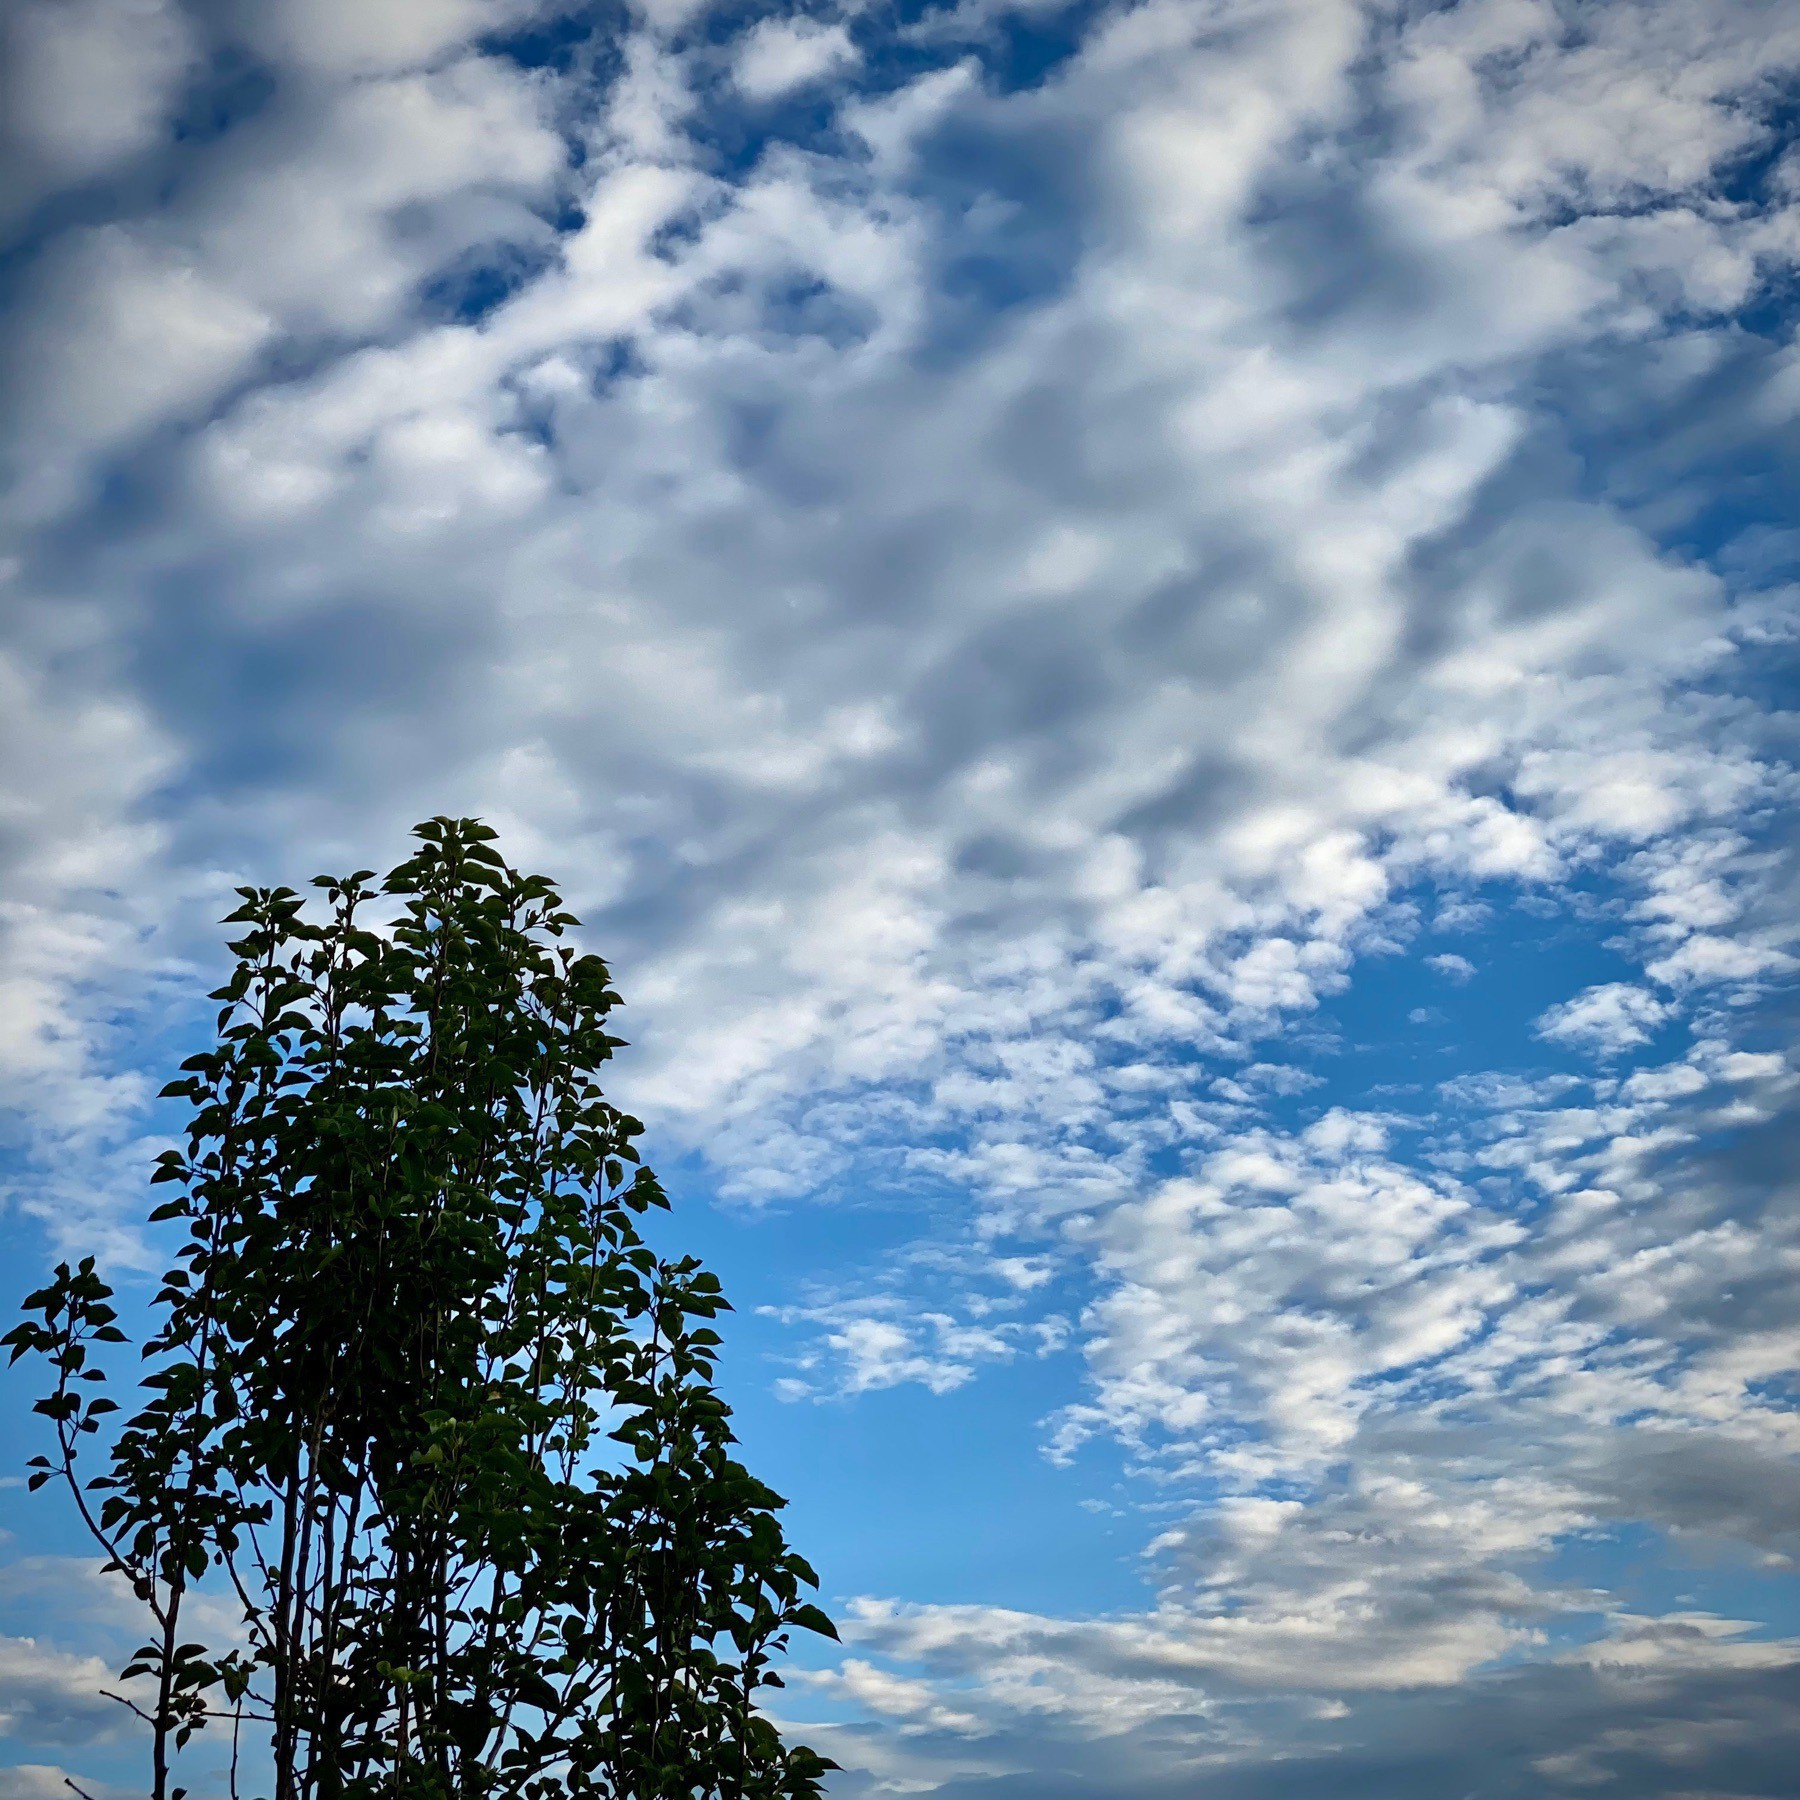 Young tree against a clouded but blue sky.